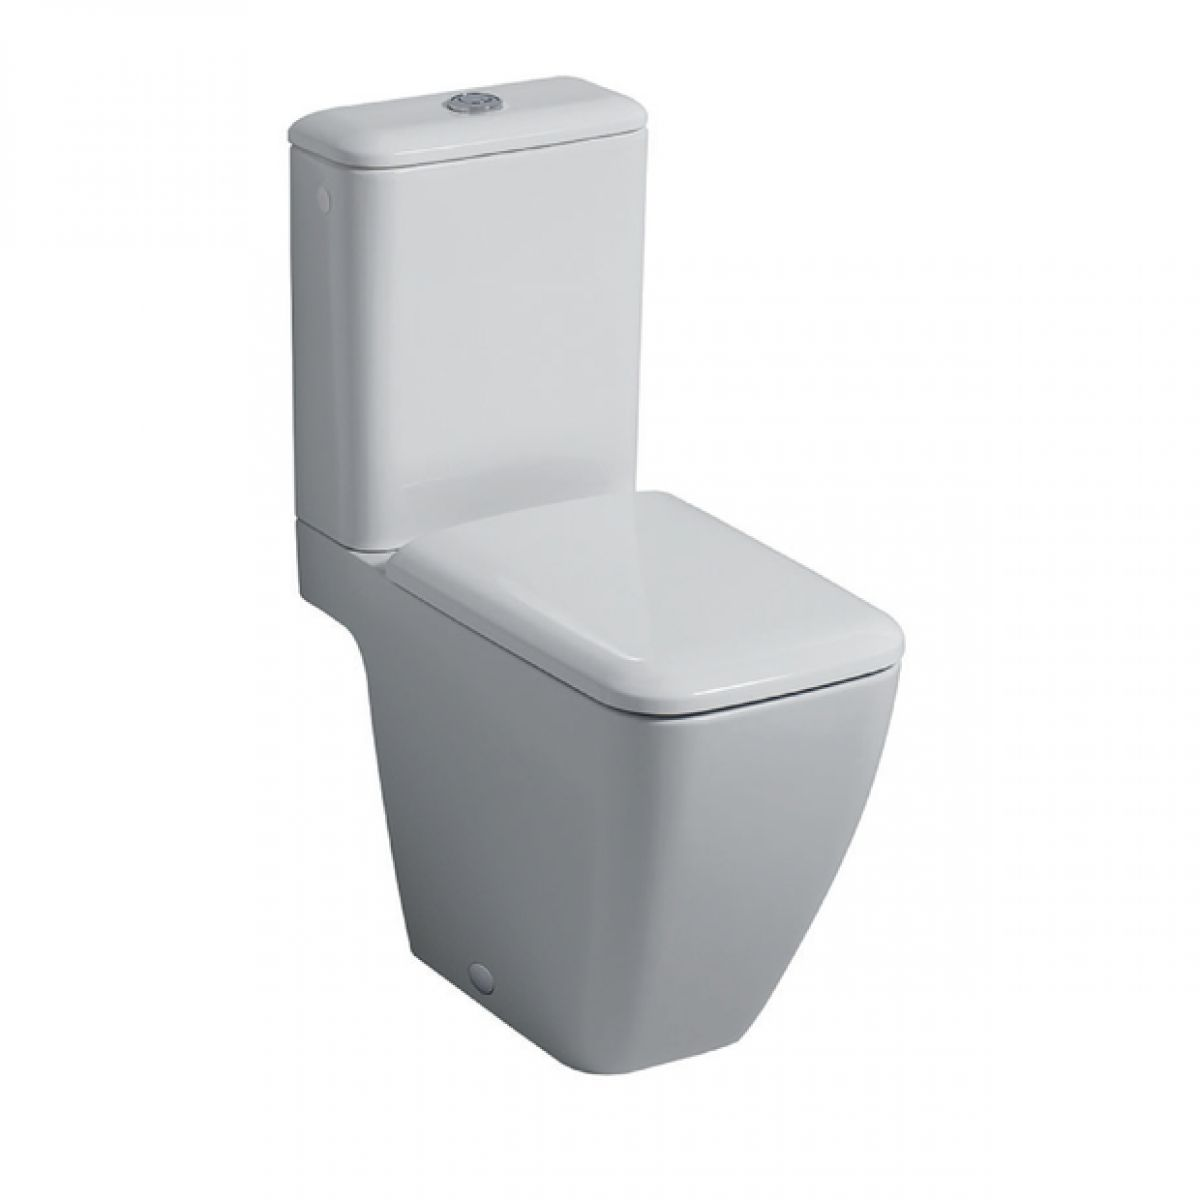 geberit icon square close coupled rimfree toilet uk bathrooms. Black Bedroom Furniture Sets. Home Design Ideas